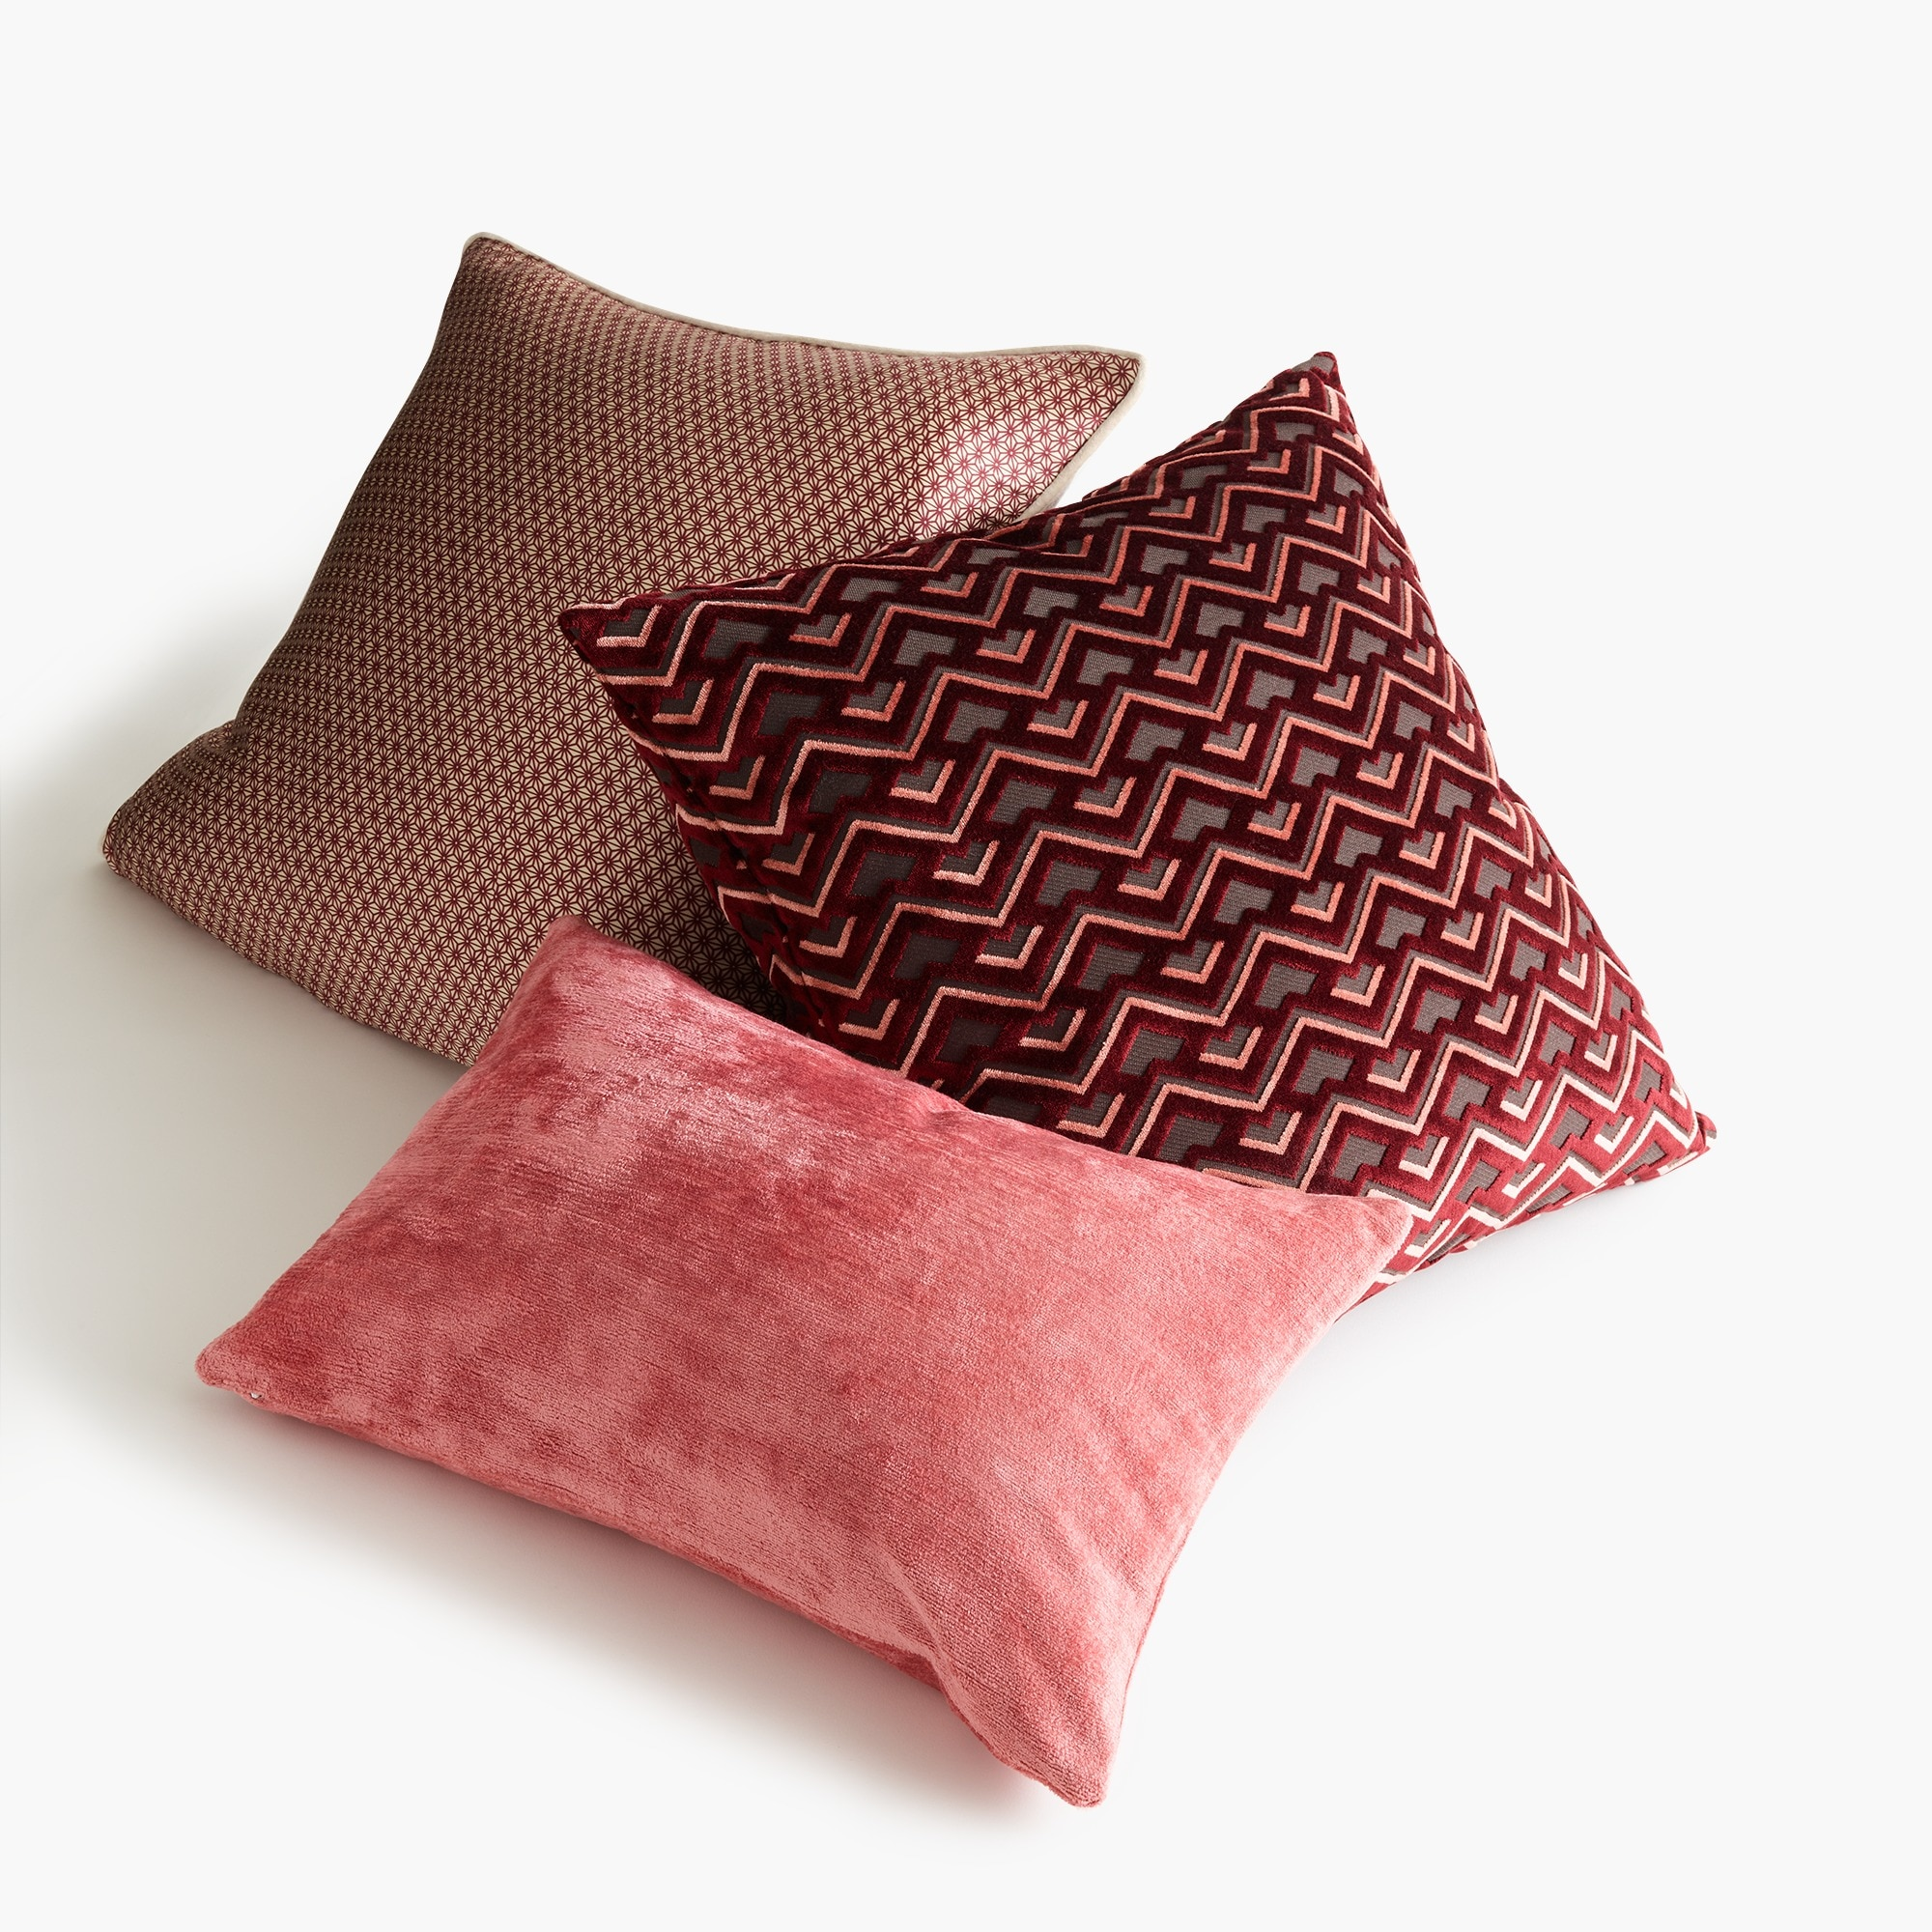 Image 3 for Compono velvet pillow in zigzag pattern